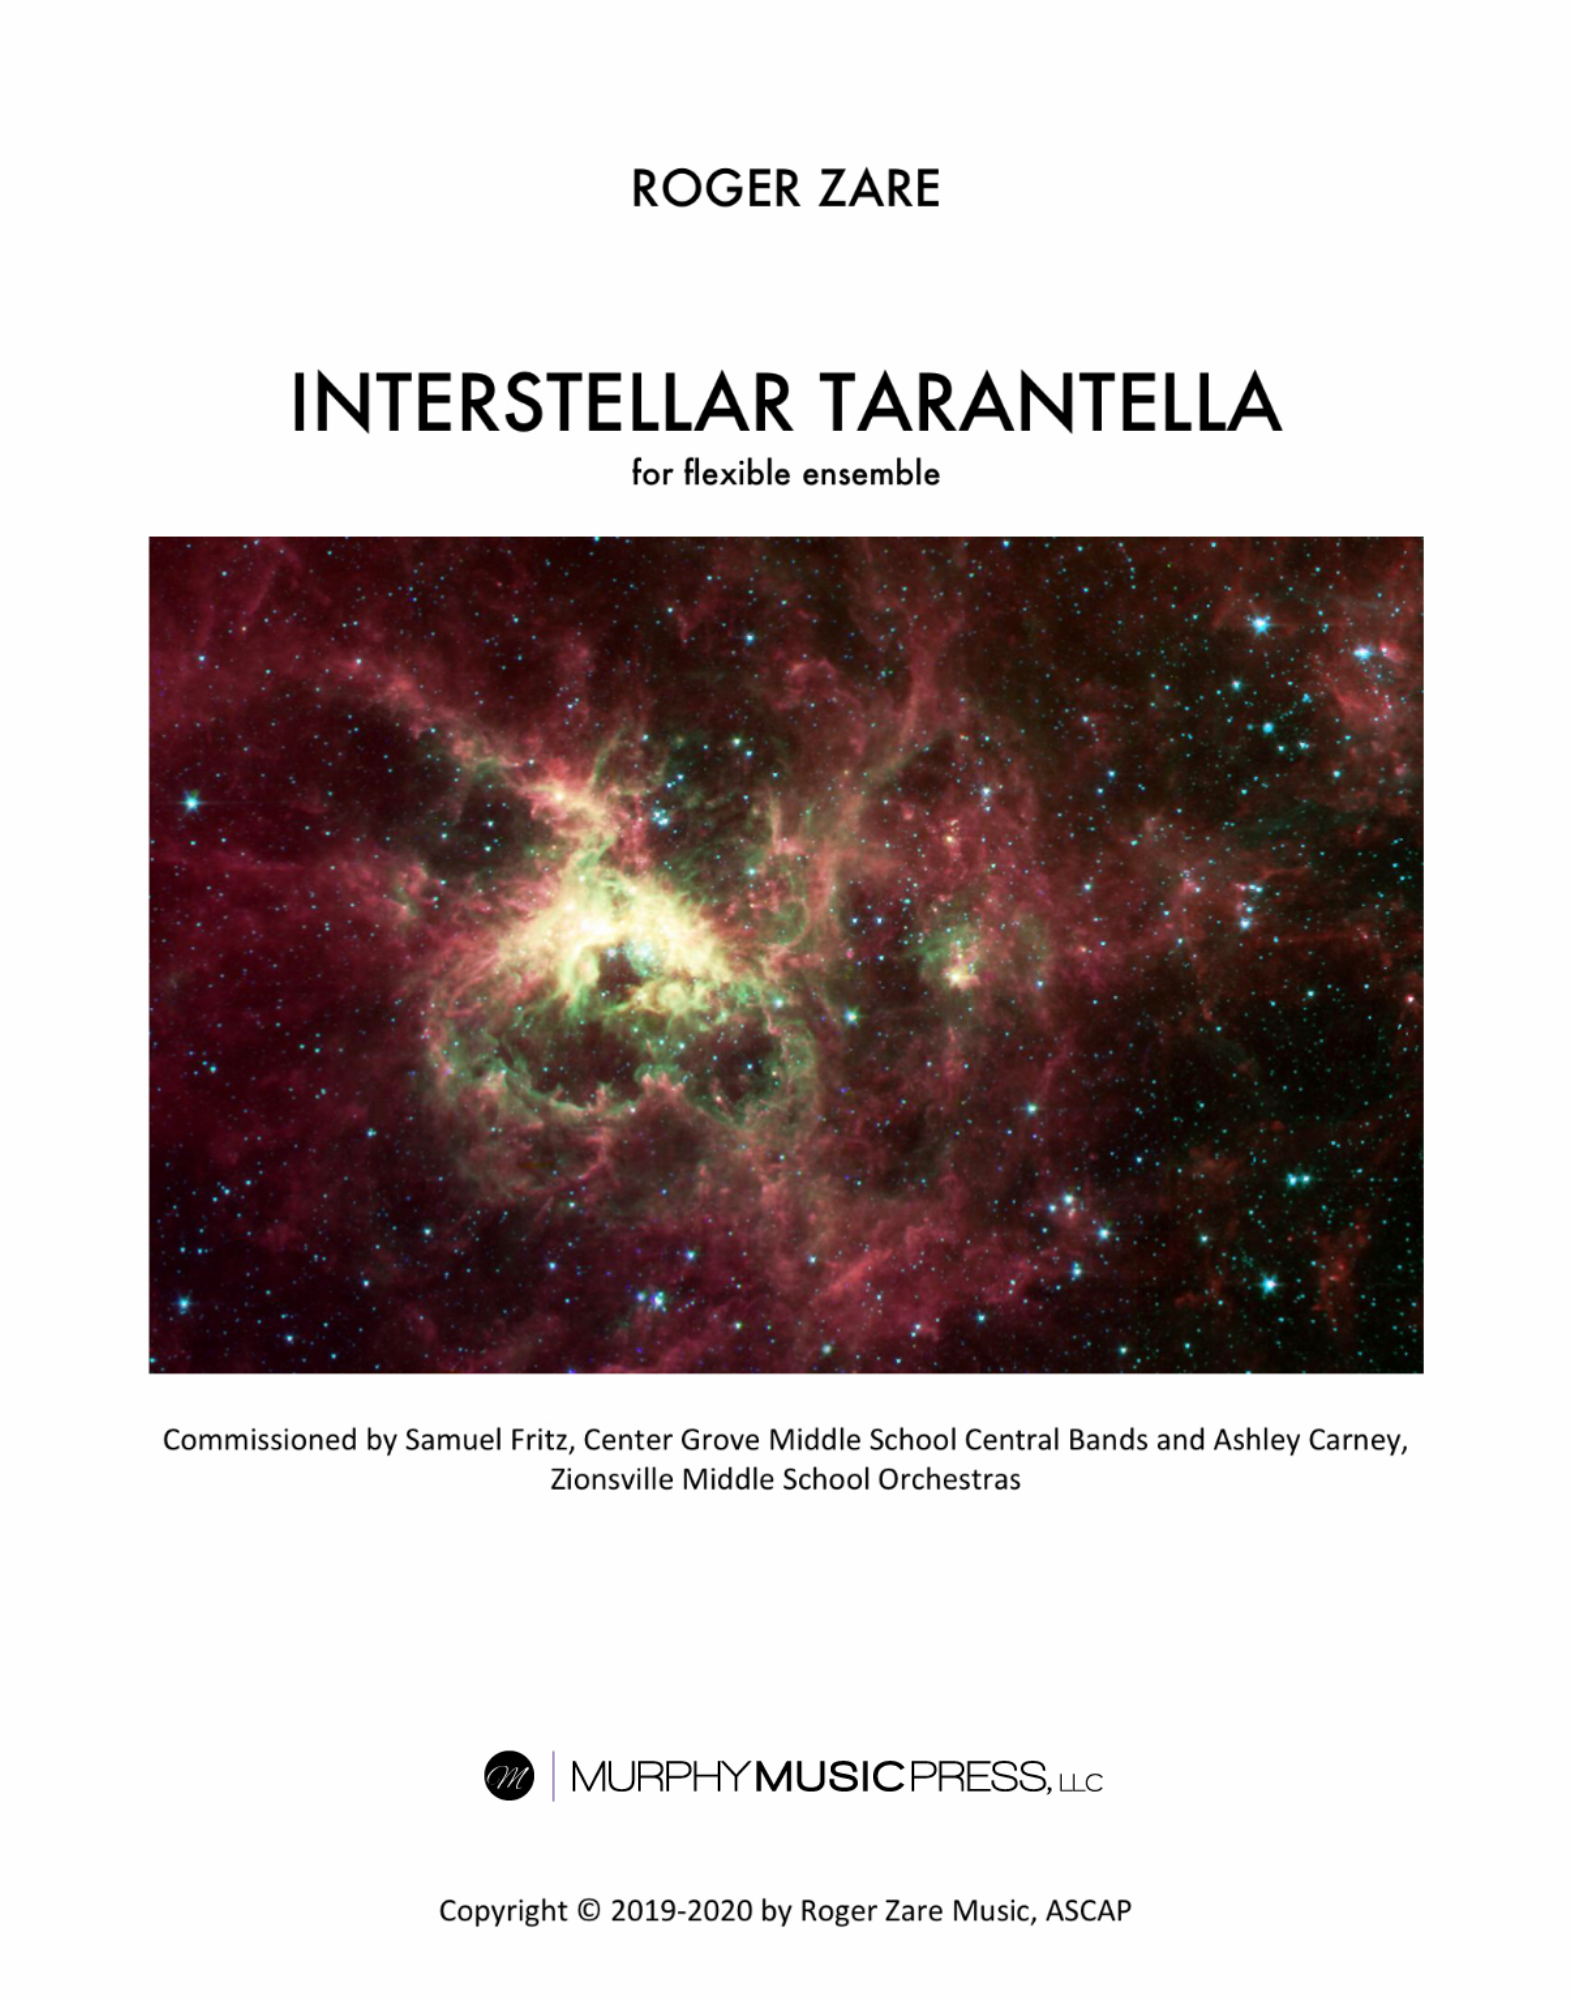 Interstellar Tarantella (Flex Version)  by Roger Zare